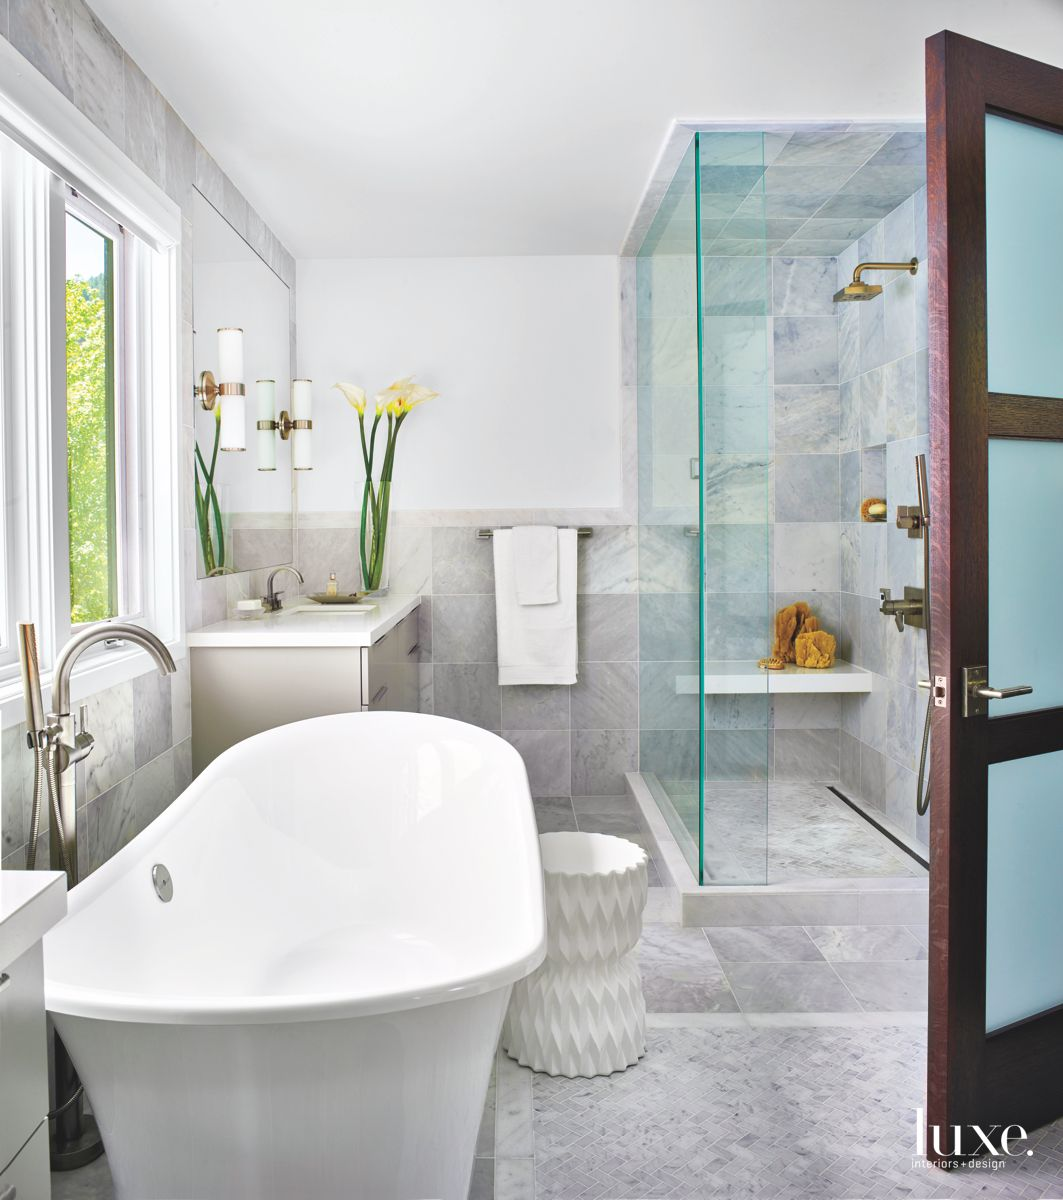 Large Soaking Tub Gray Master Bathroom with Flowers and Sconces